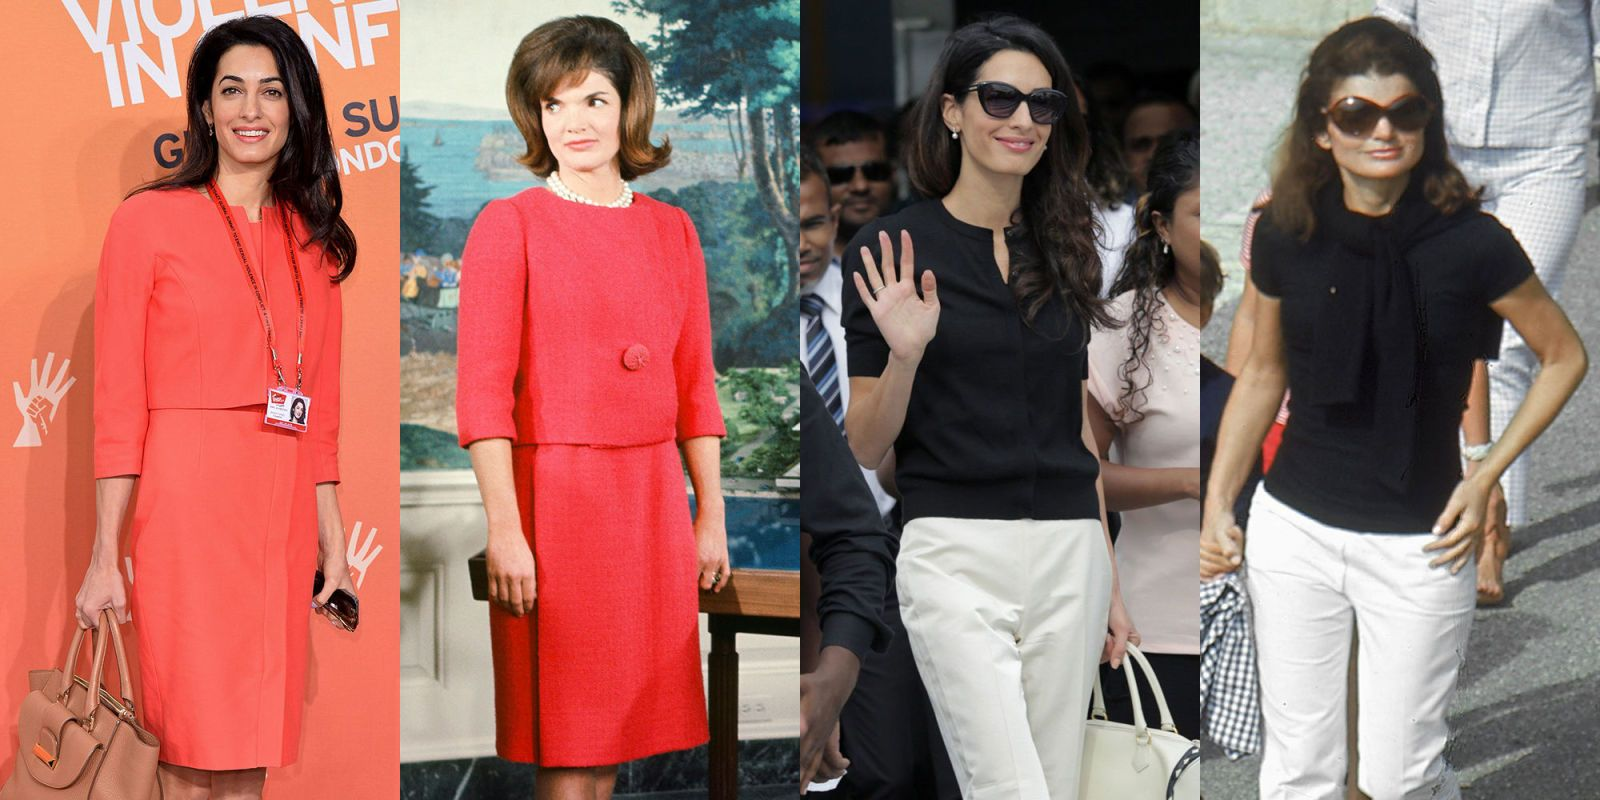 14 Photos That Prove Amal Clooney Is Jackie Kennedy Incarnate  - MarieClaire.com